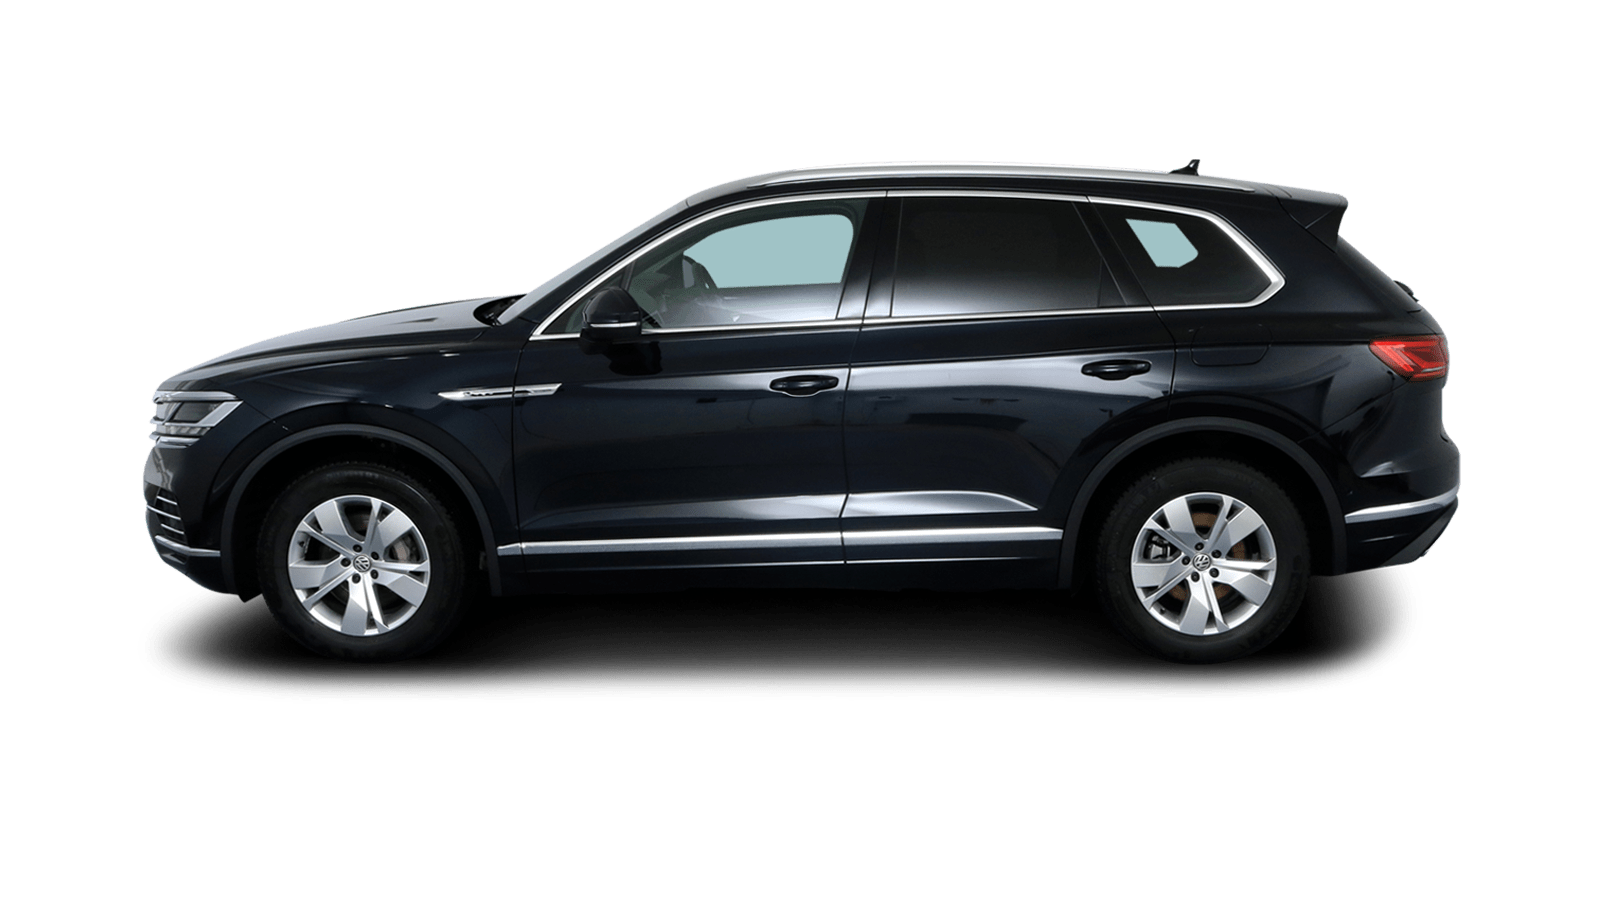 VW Touareg Blue back - Clyde car subscription